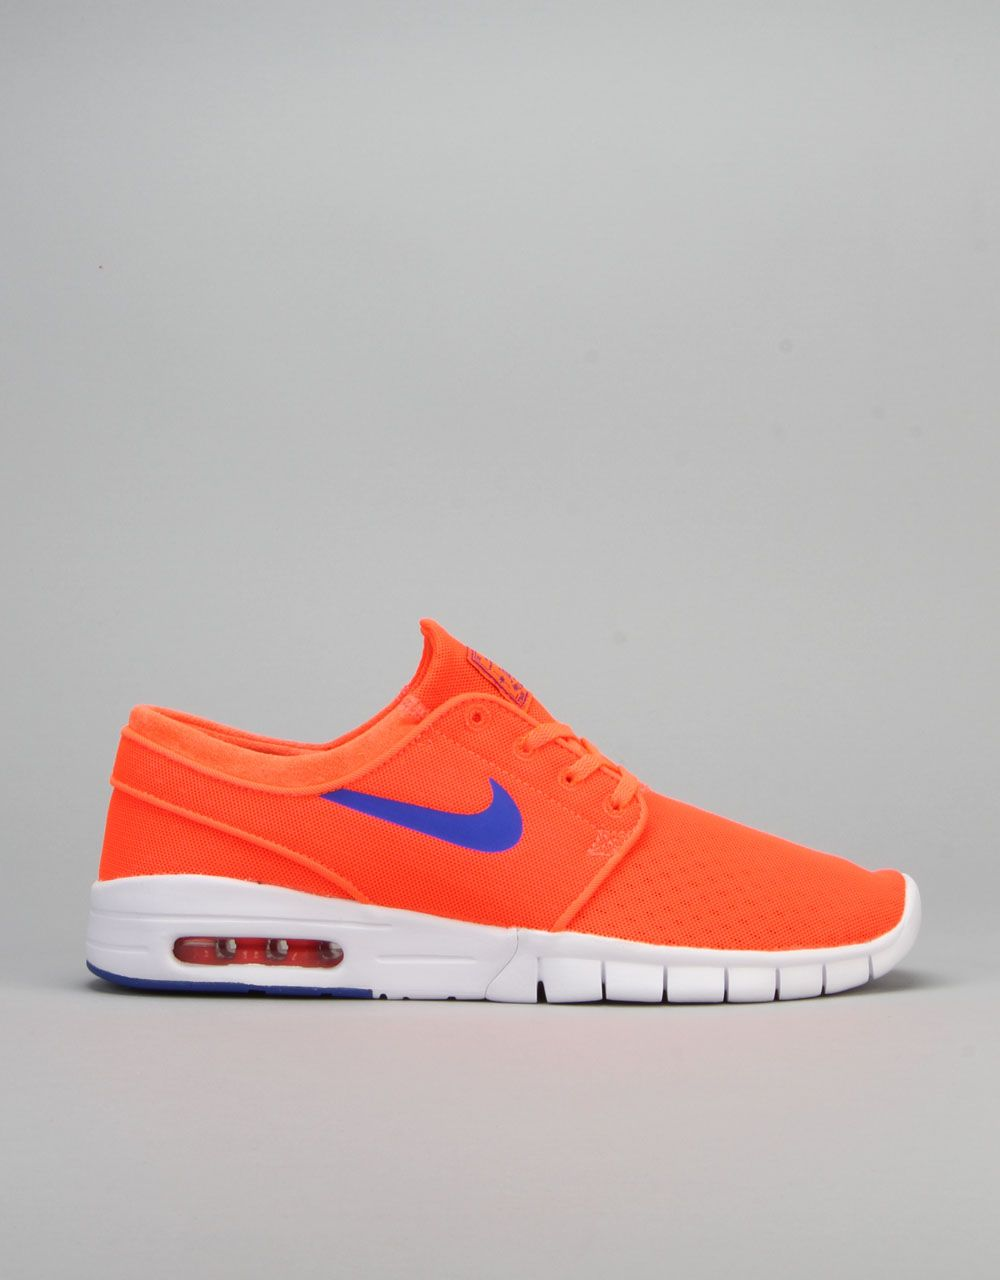 newest 23a04 7c6a7 Nike SB Stefan Janoski Max Shoes - Total Crimson Racer Blue-White